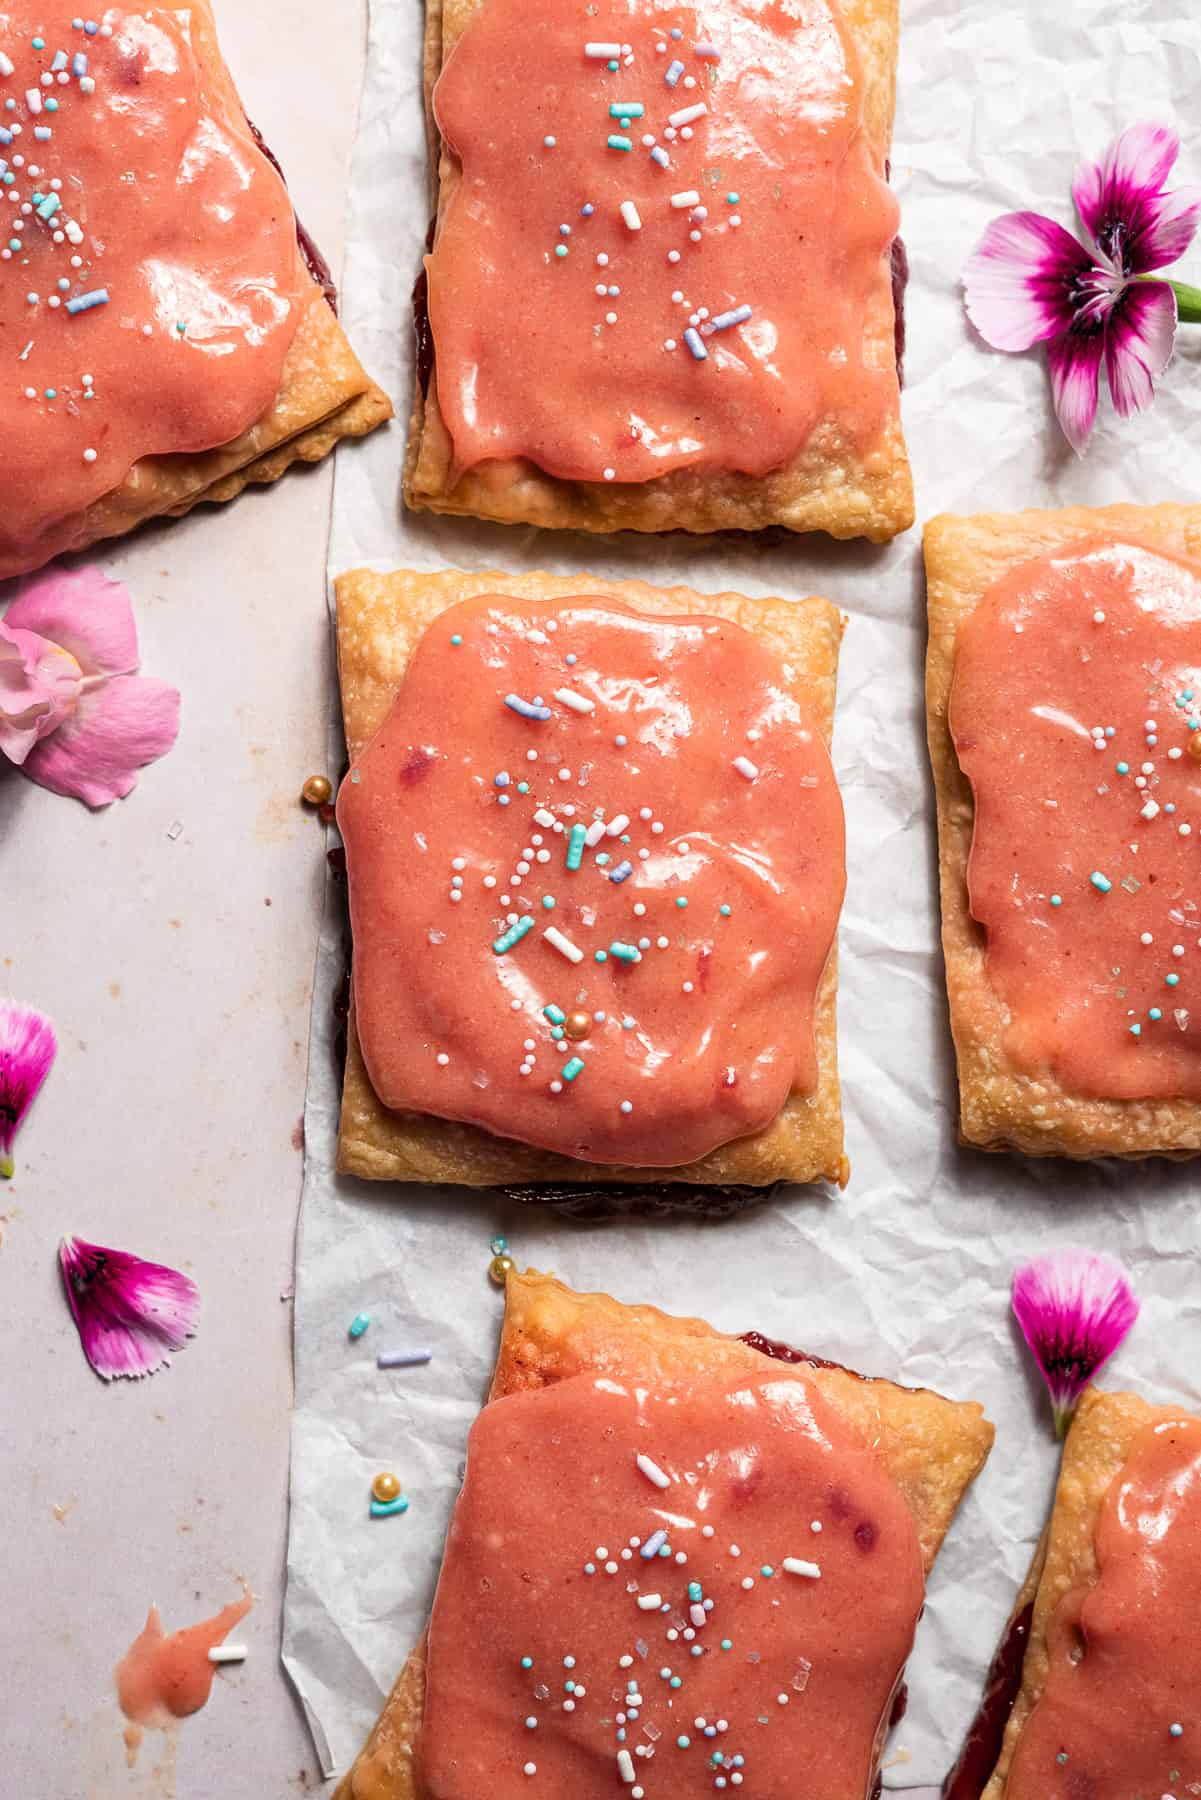 freshly glazed guava poptarts with sprinkles and edible flowers